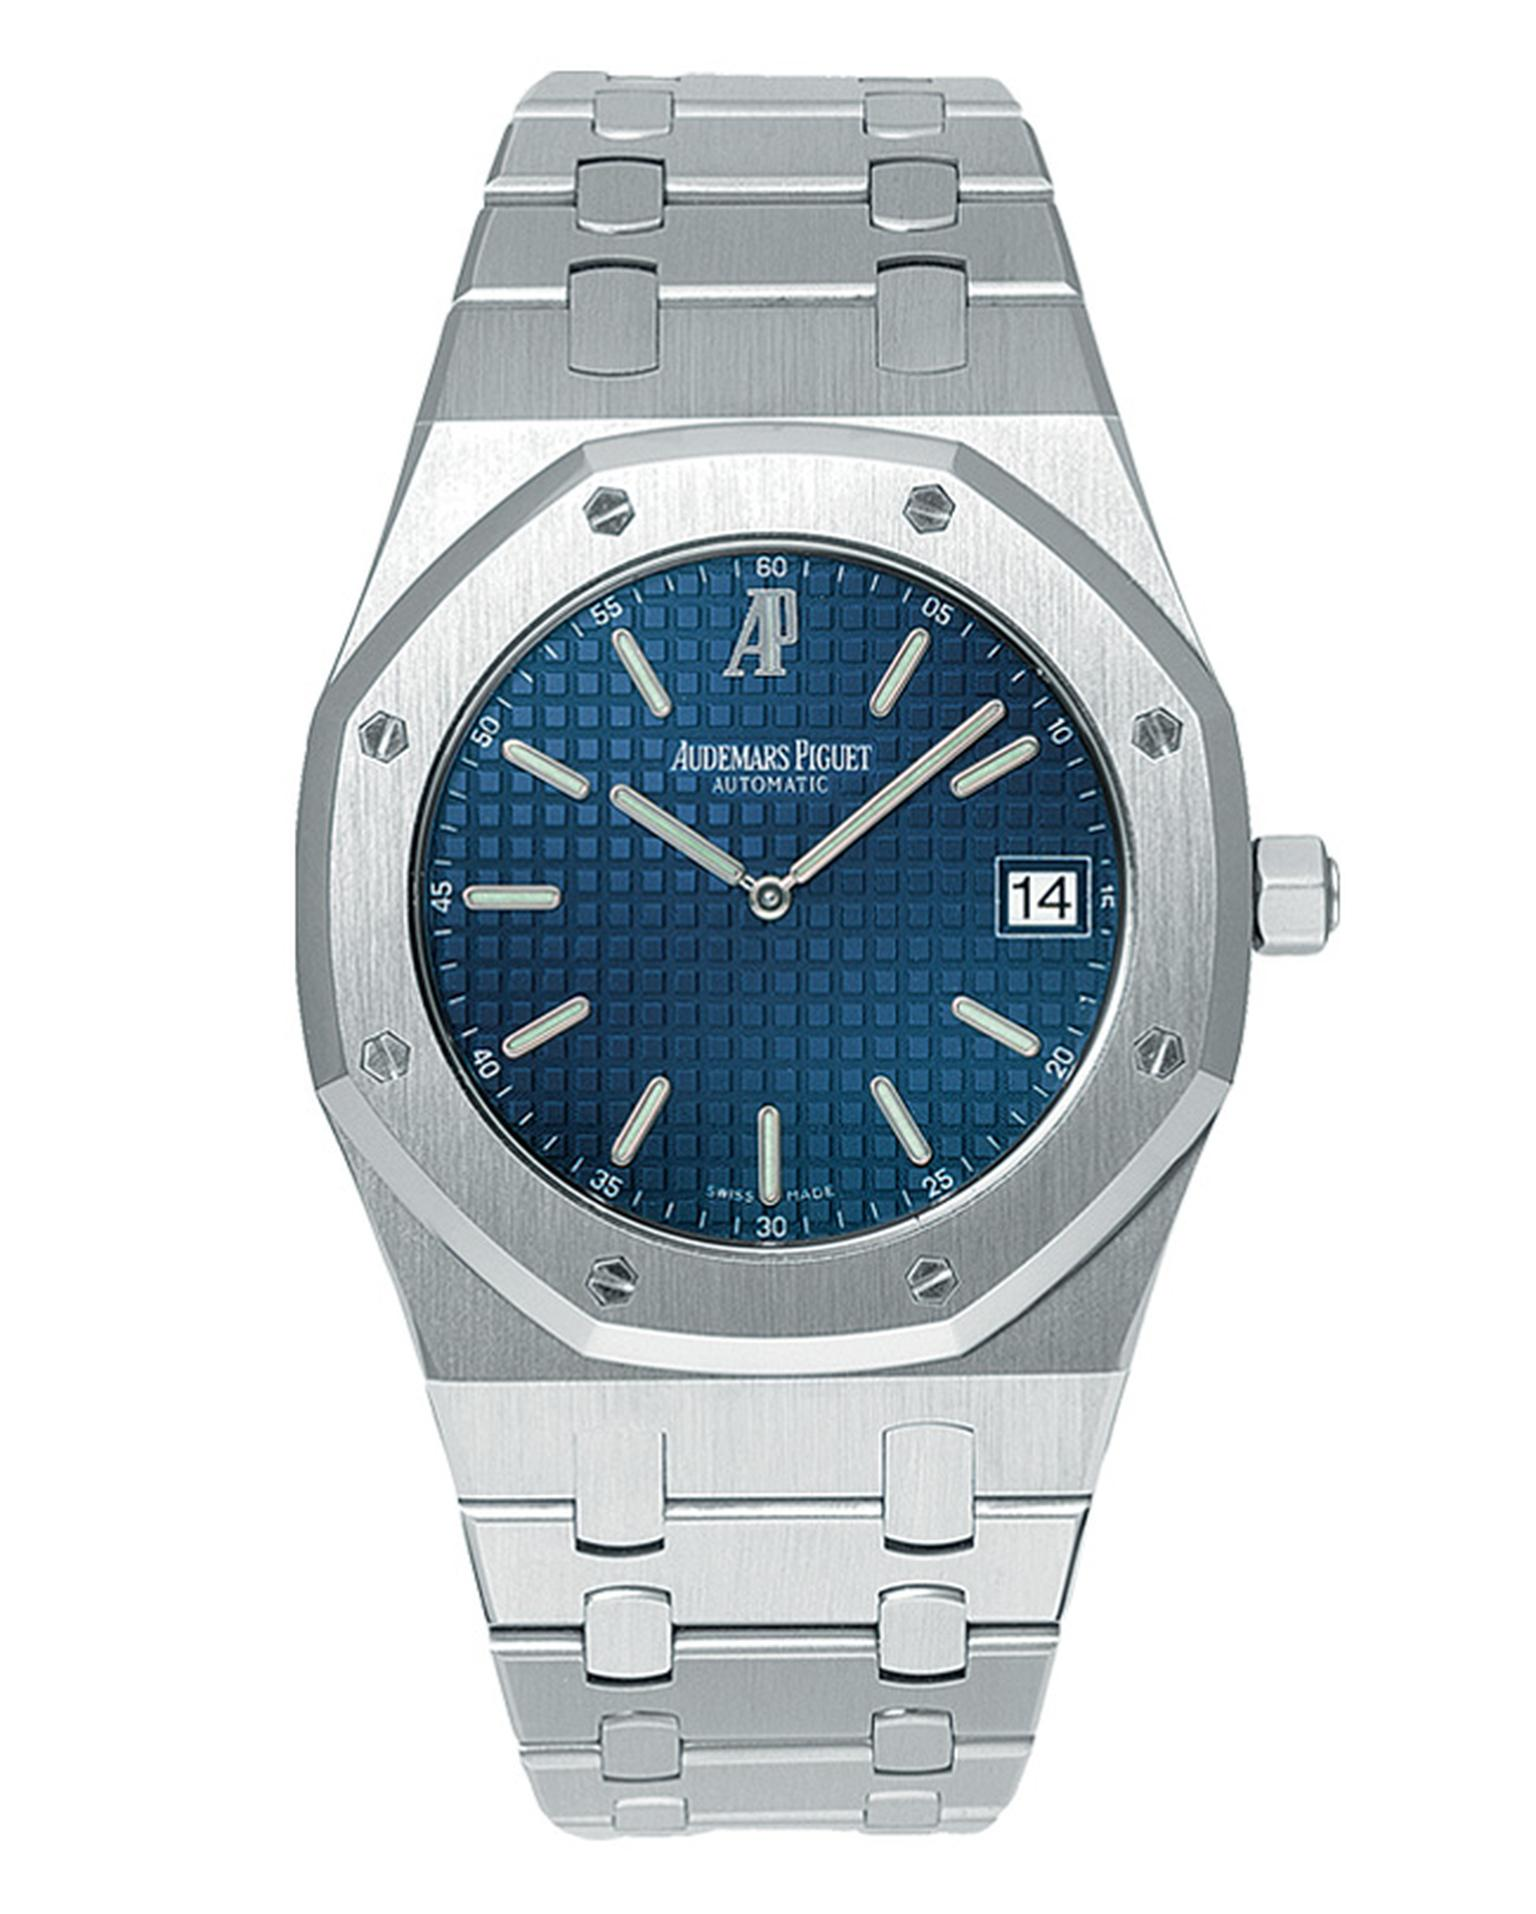 Audemars Piguet Royal Oak Selfwinding in stainless steel_20130425_Main